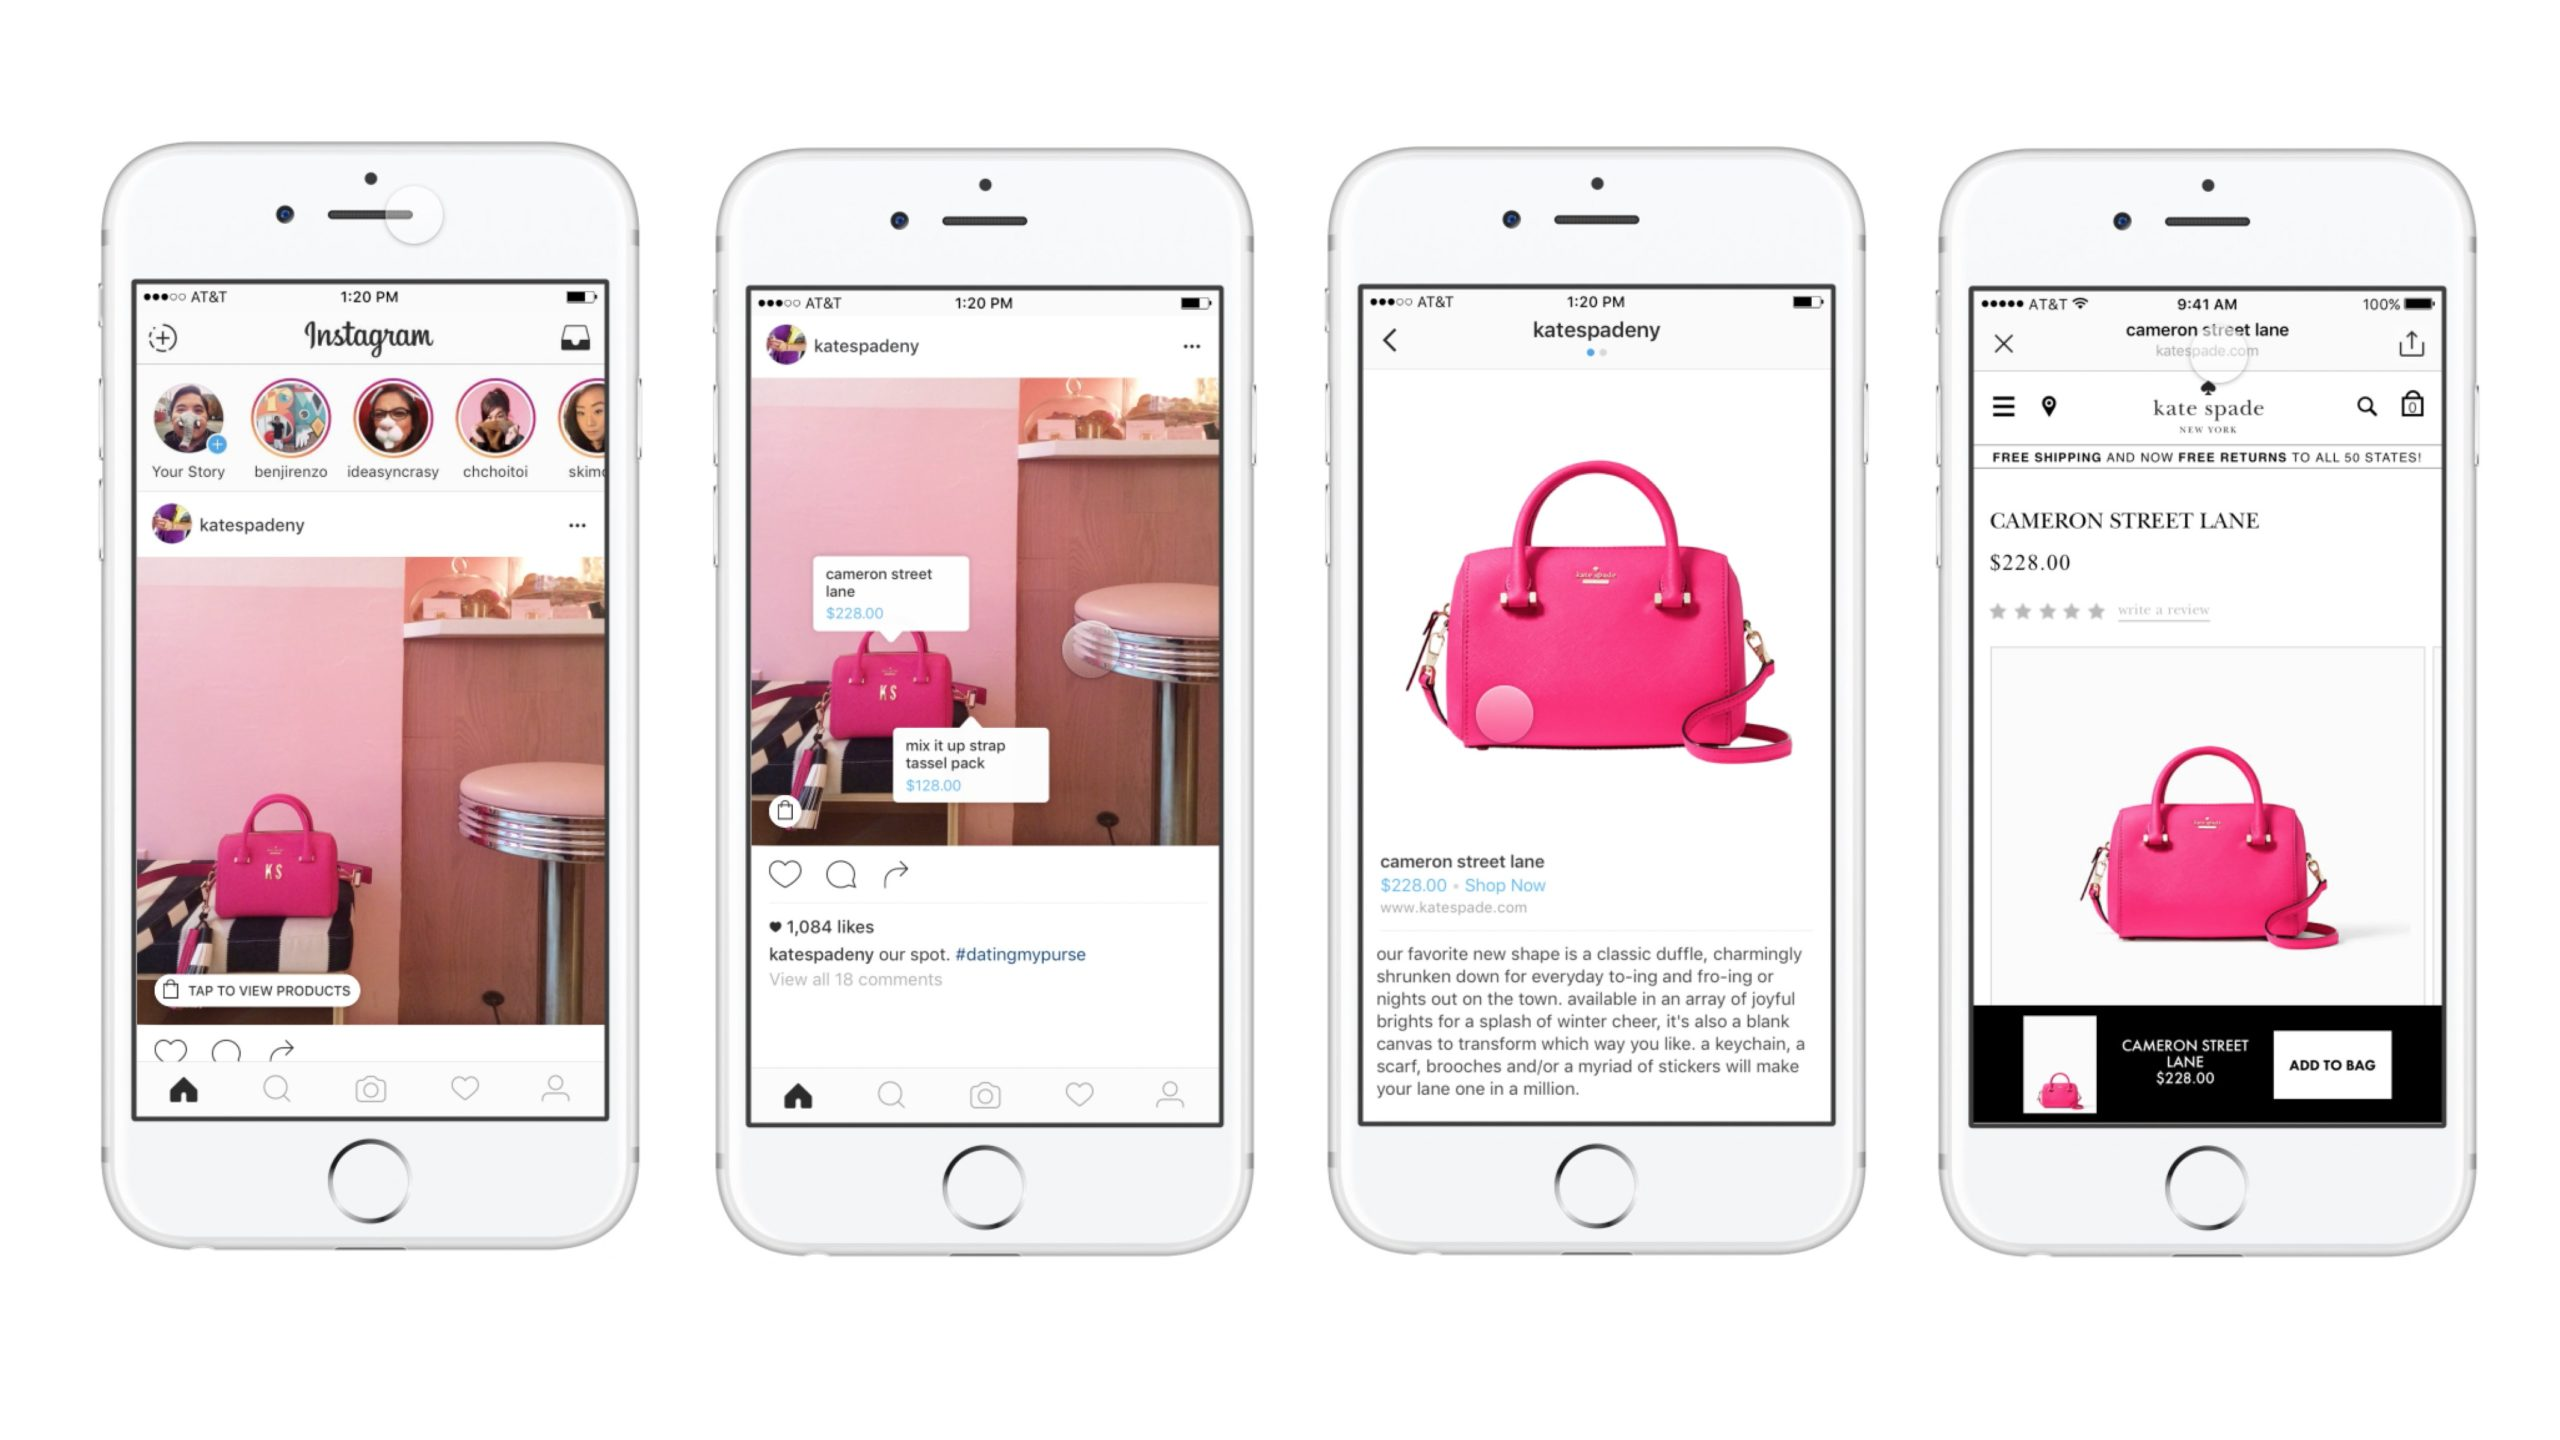 Instagram is more commerce friendly than Facebook